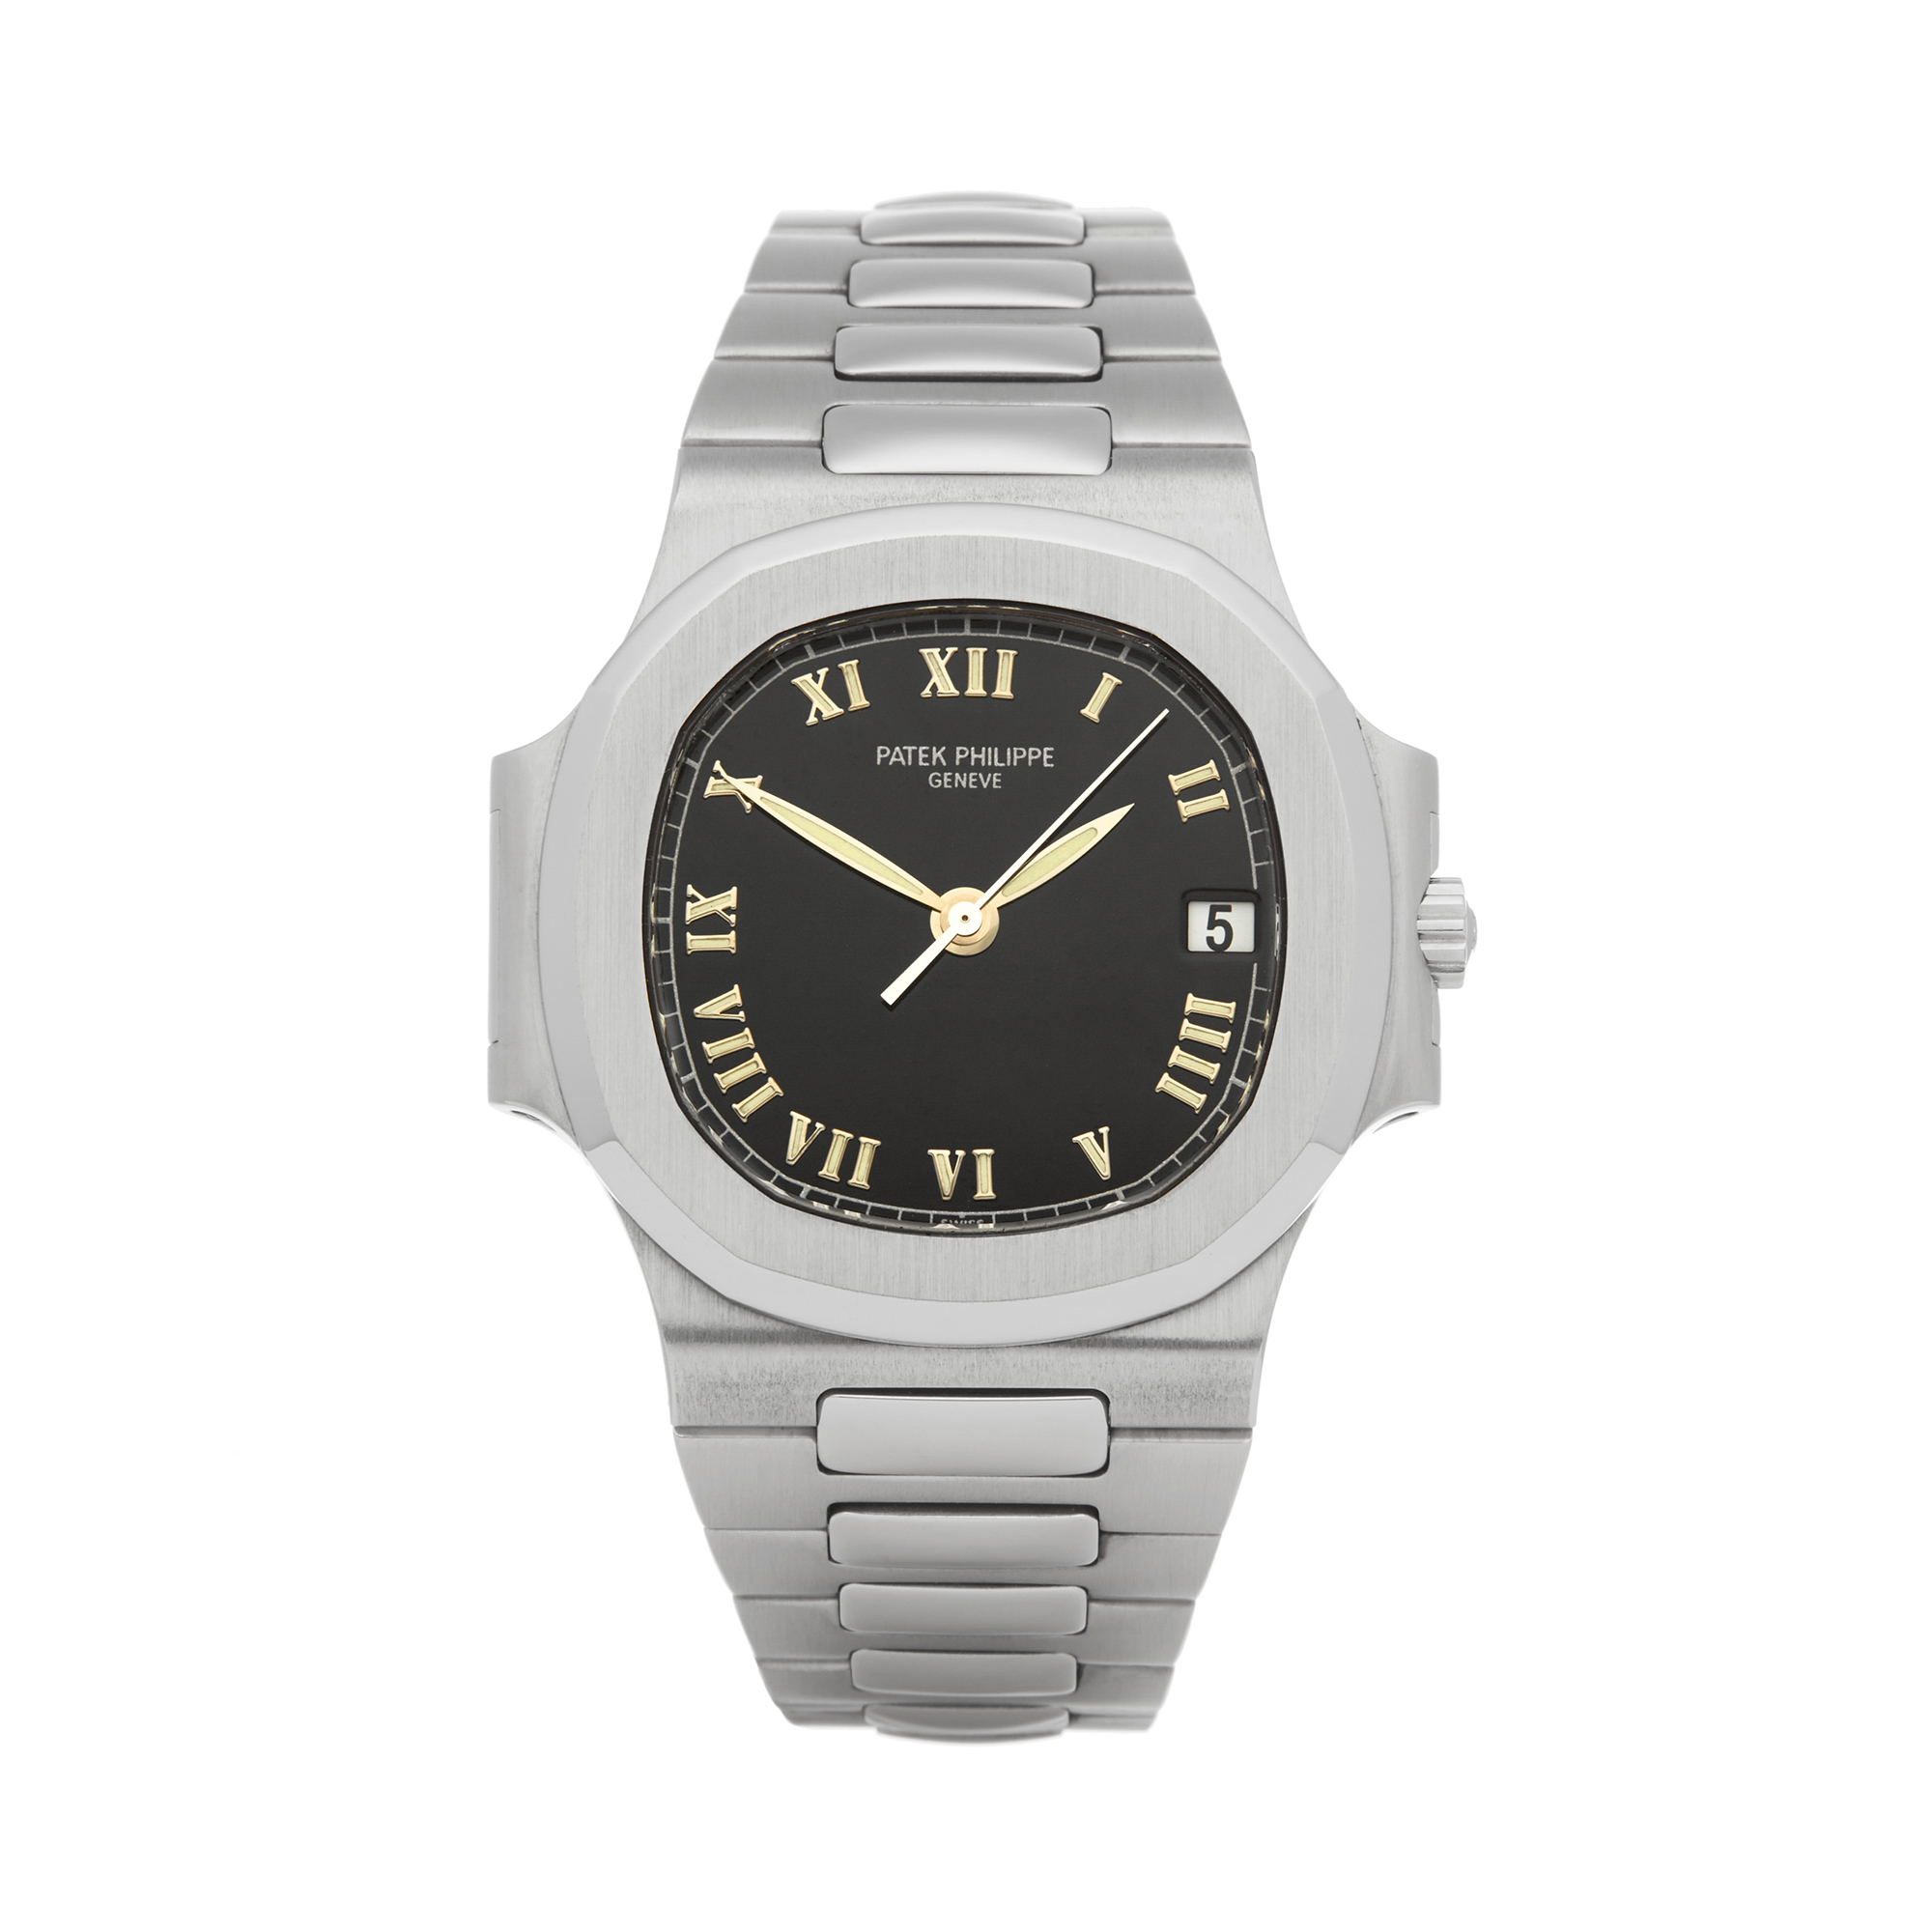 Lot 1 - Patek Philippe Nautilus 3800/1A-001 Men Stainless Steel Watch